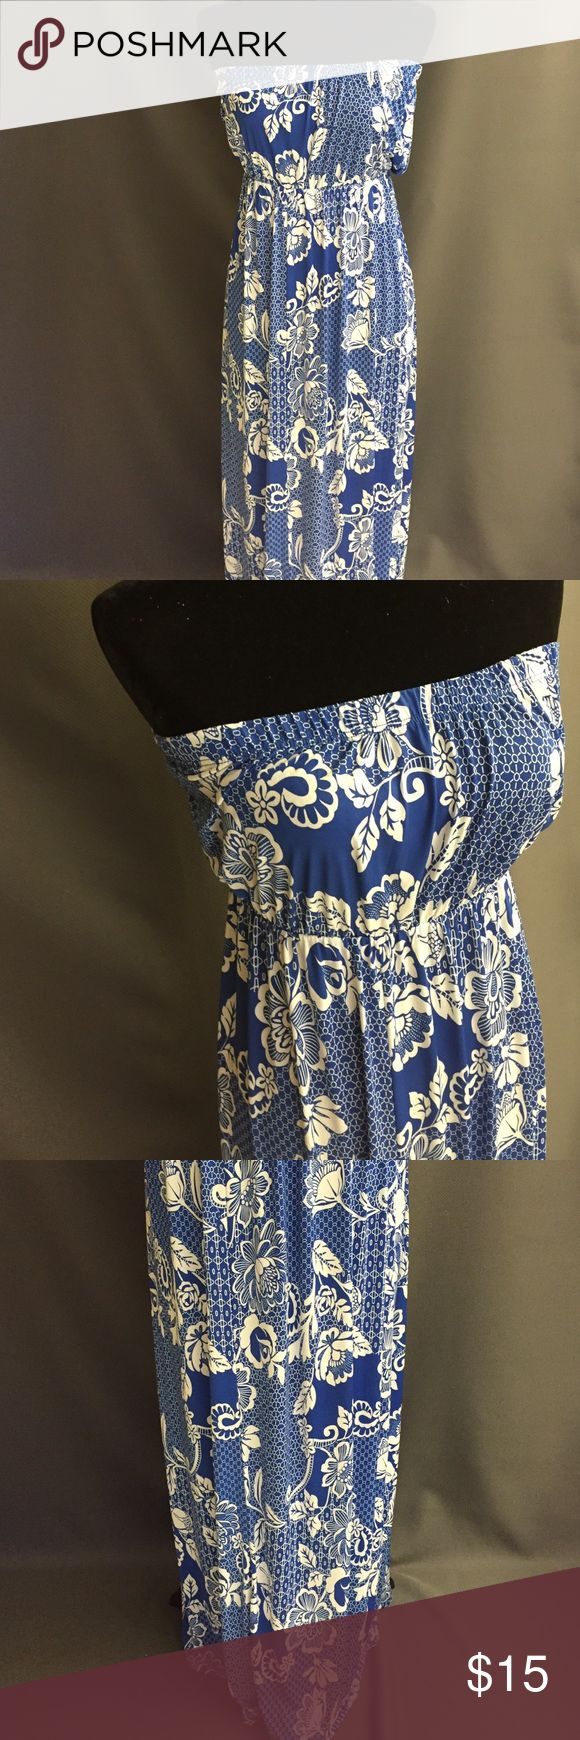 """Strapless royal blue and white maxi dress Blue and white maxi dress .  Features flower print.  Length: 50""""  Available sizes: large  Material: Polyester / Spandex  ❤️Add to bundle and save ✖️ No Paypal or outside transactions Dresses Maxi"""